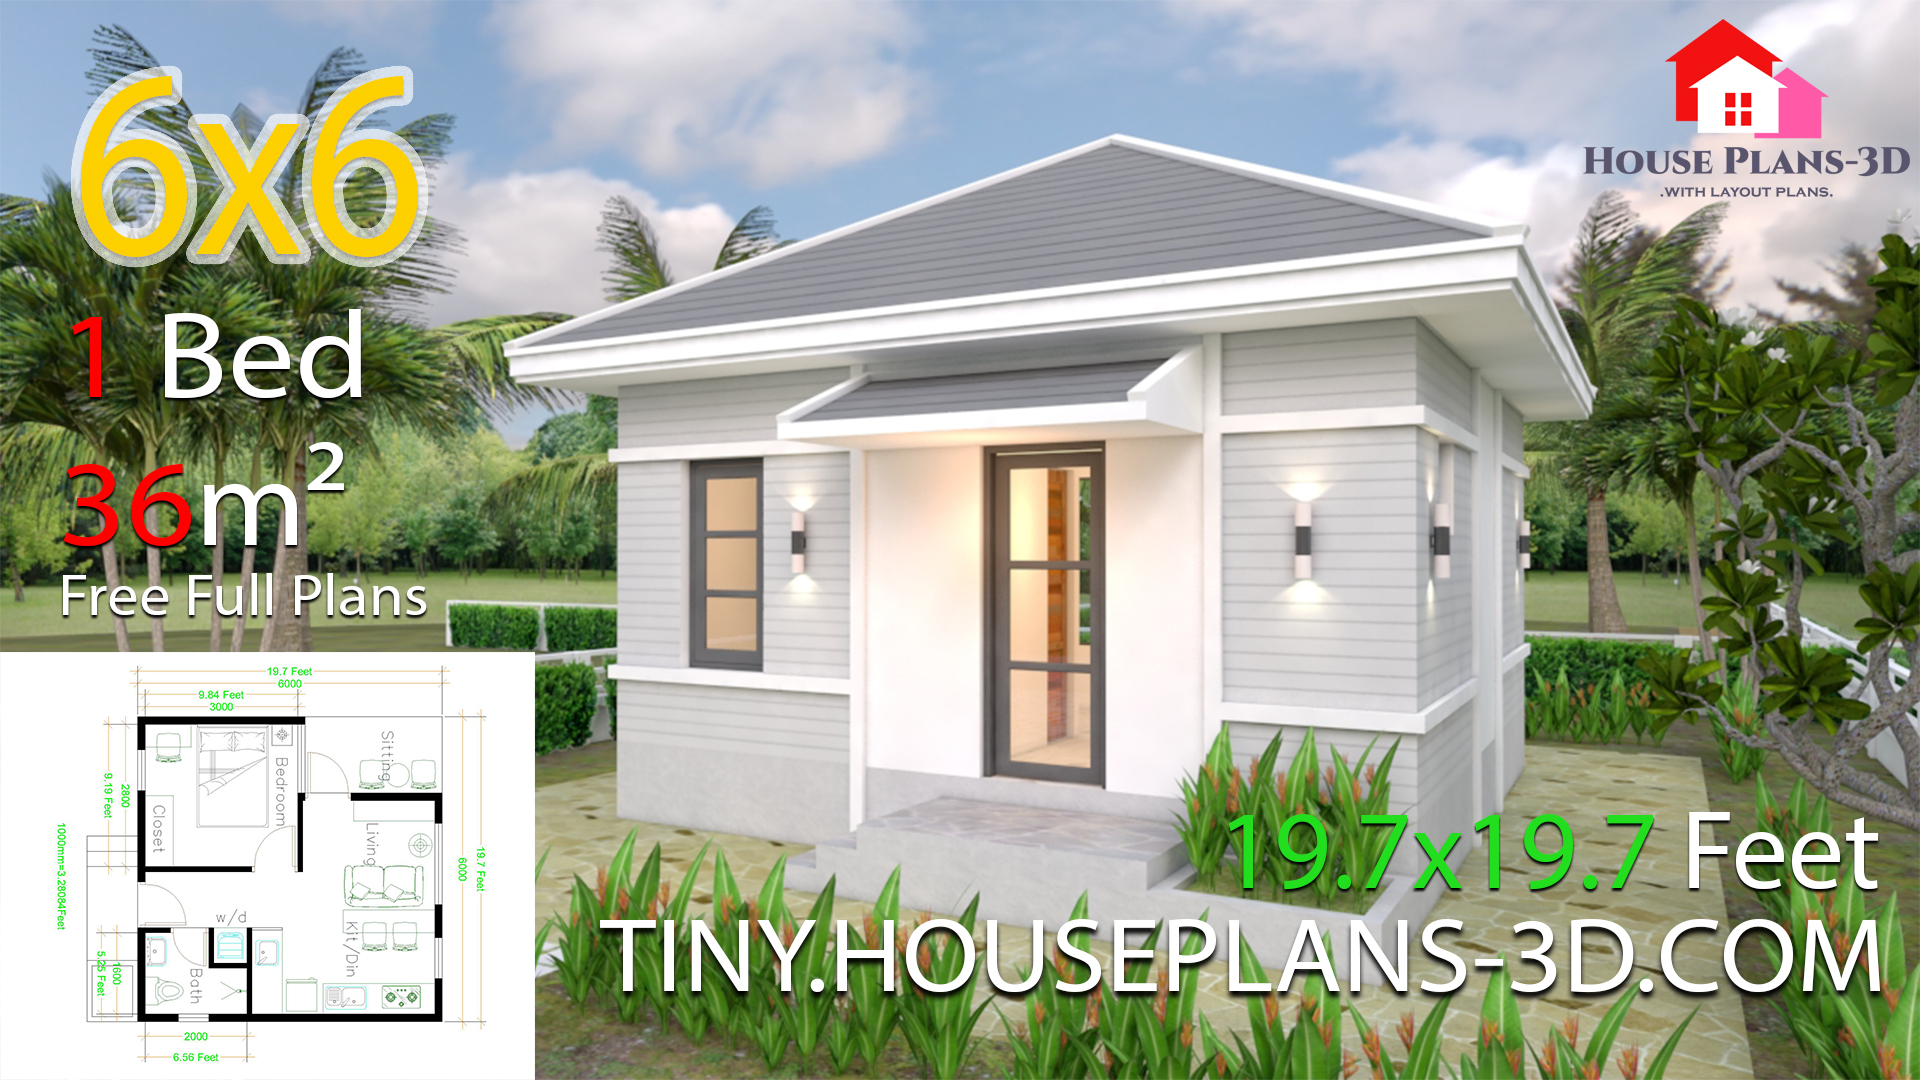 Small House Plans 6x6 with One Bedroom Hip Roof - Tiny House Plans